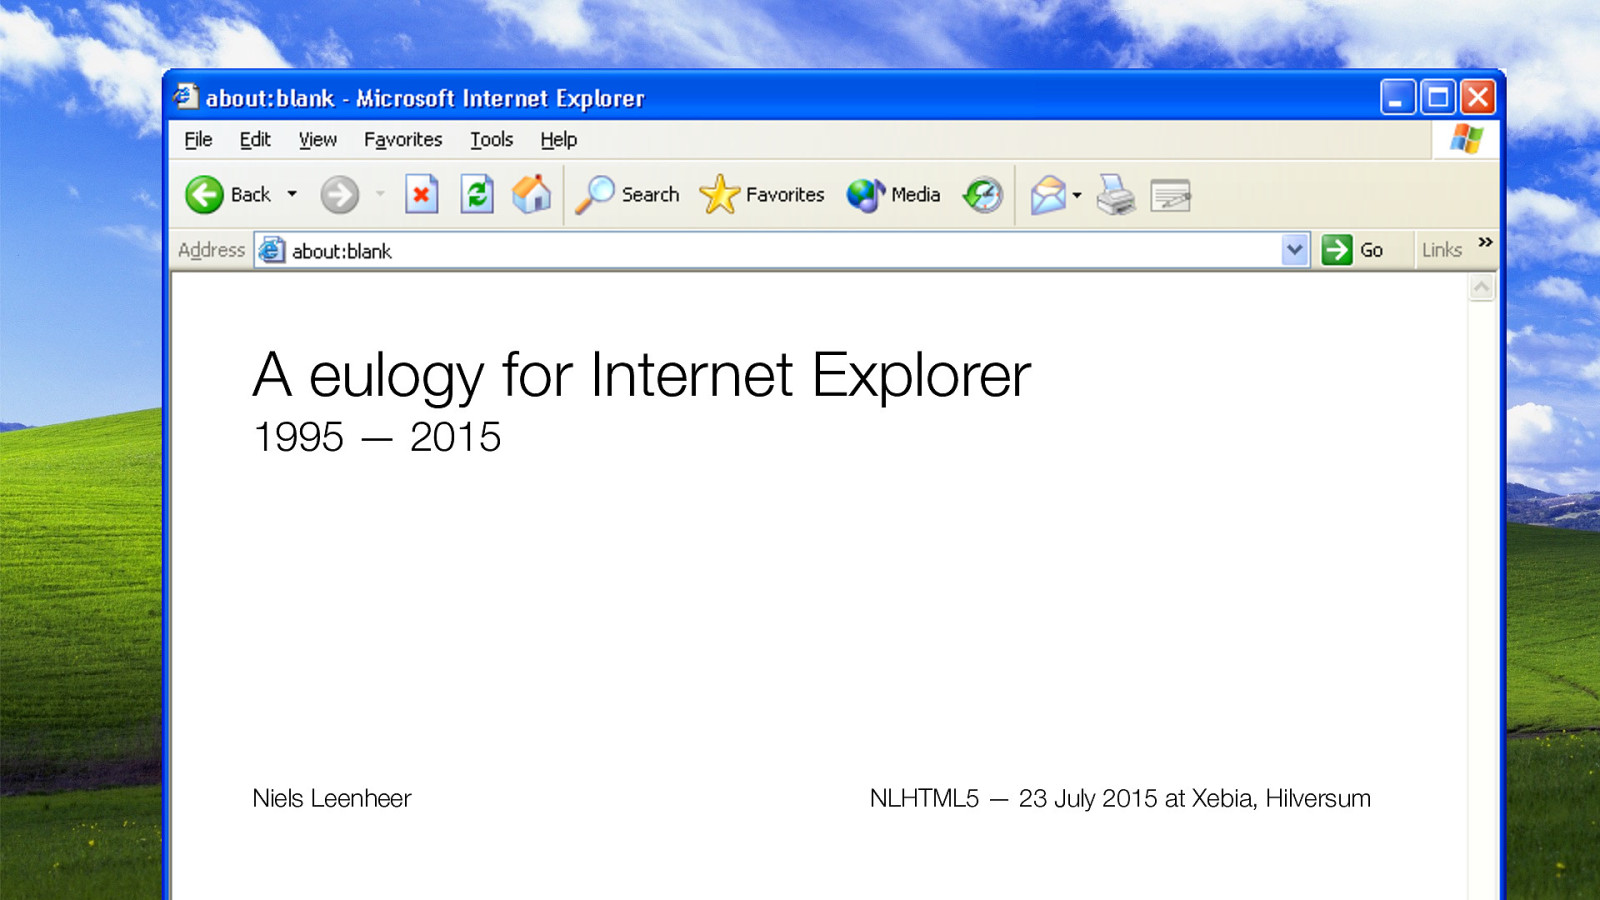 A eulogy for Internet Explorer